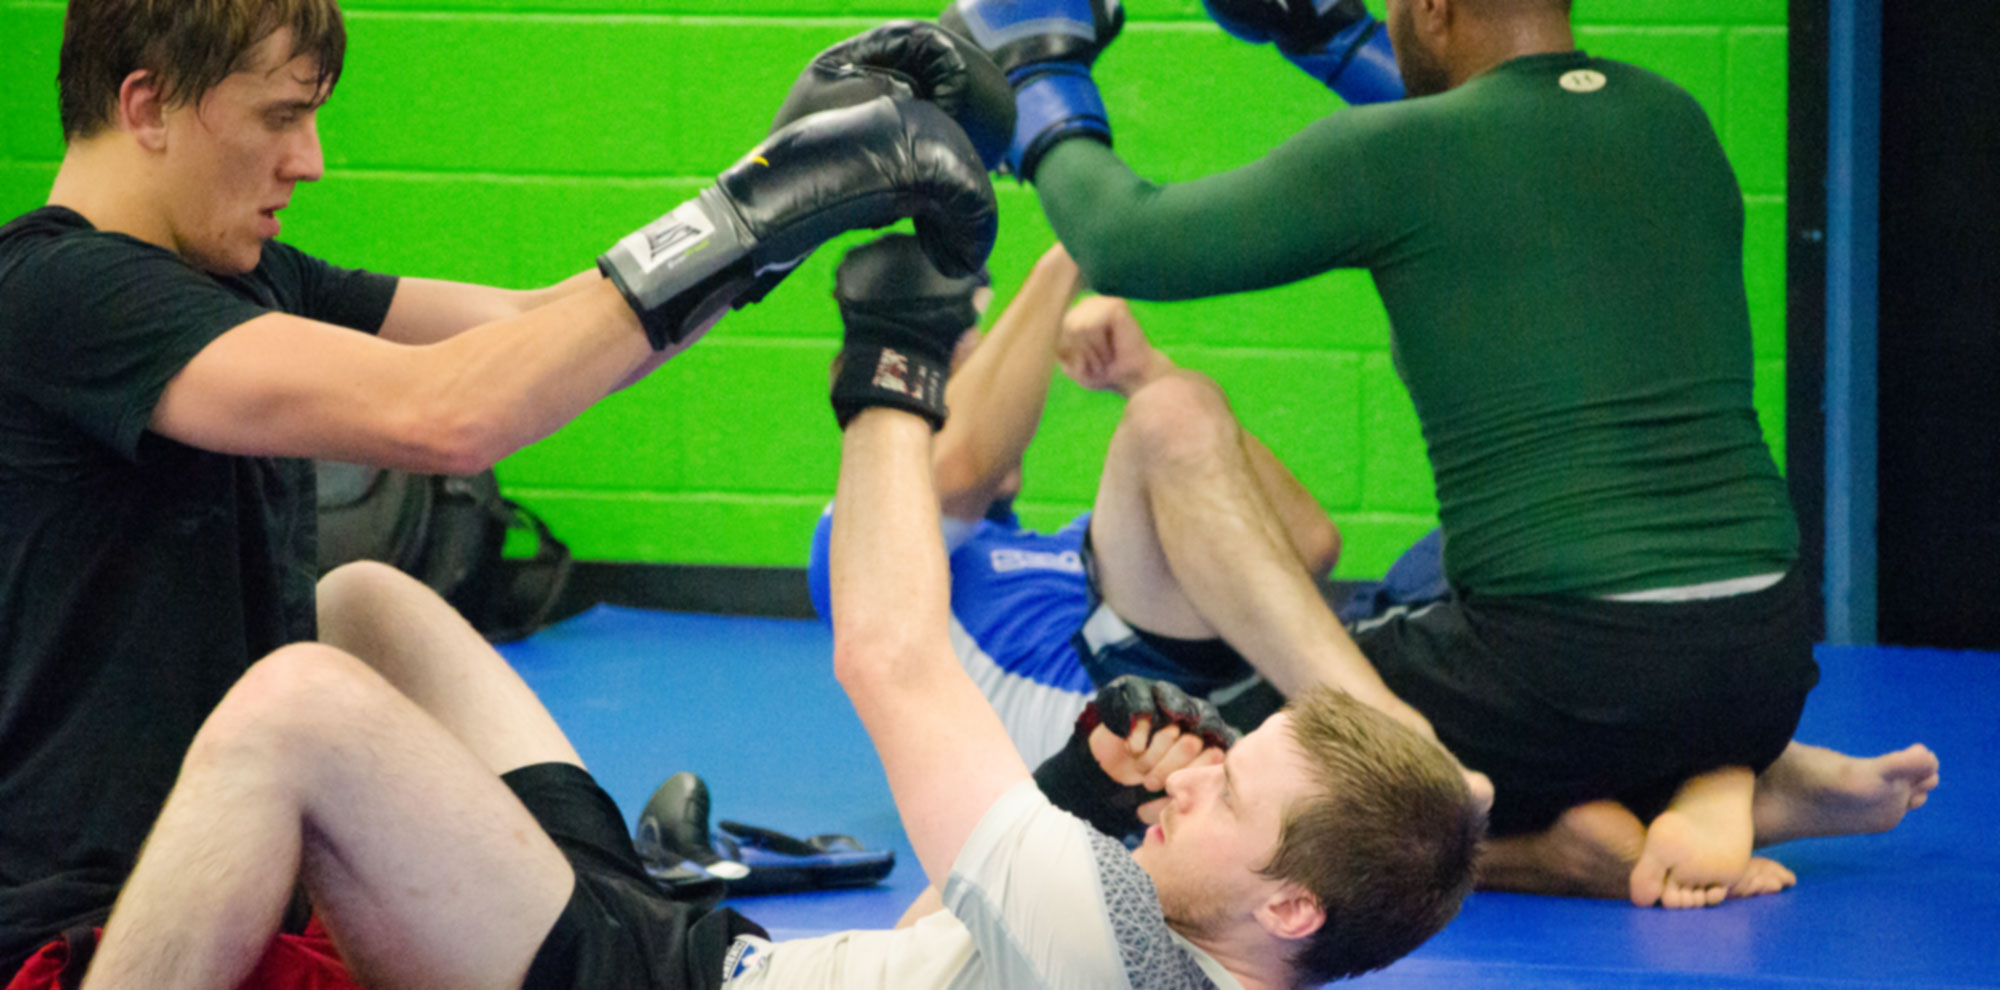 MMA Class Gunn Academy in Ellicott City Columbia Howard County Maryland